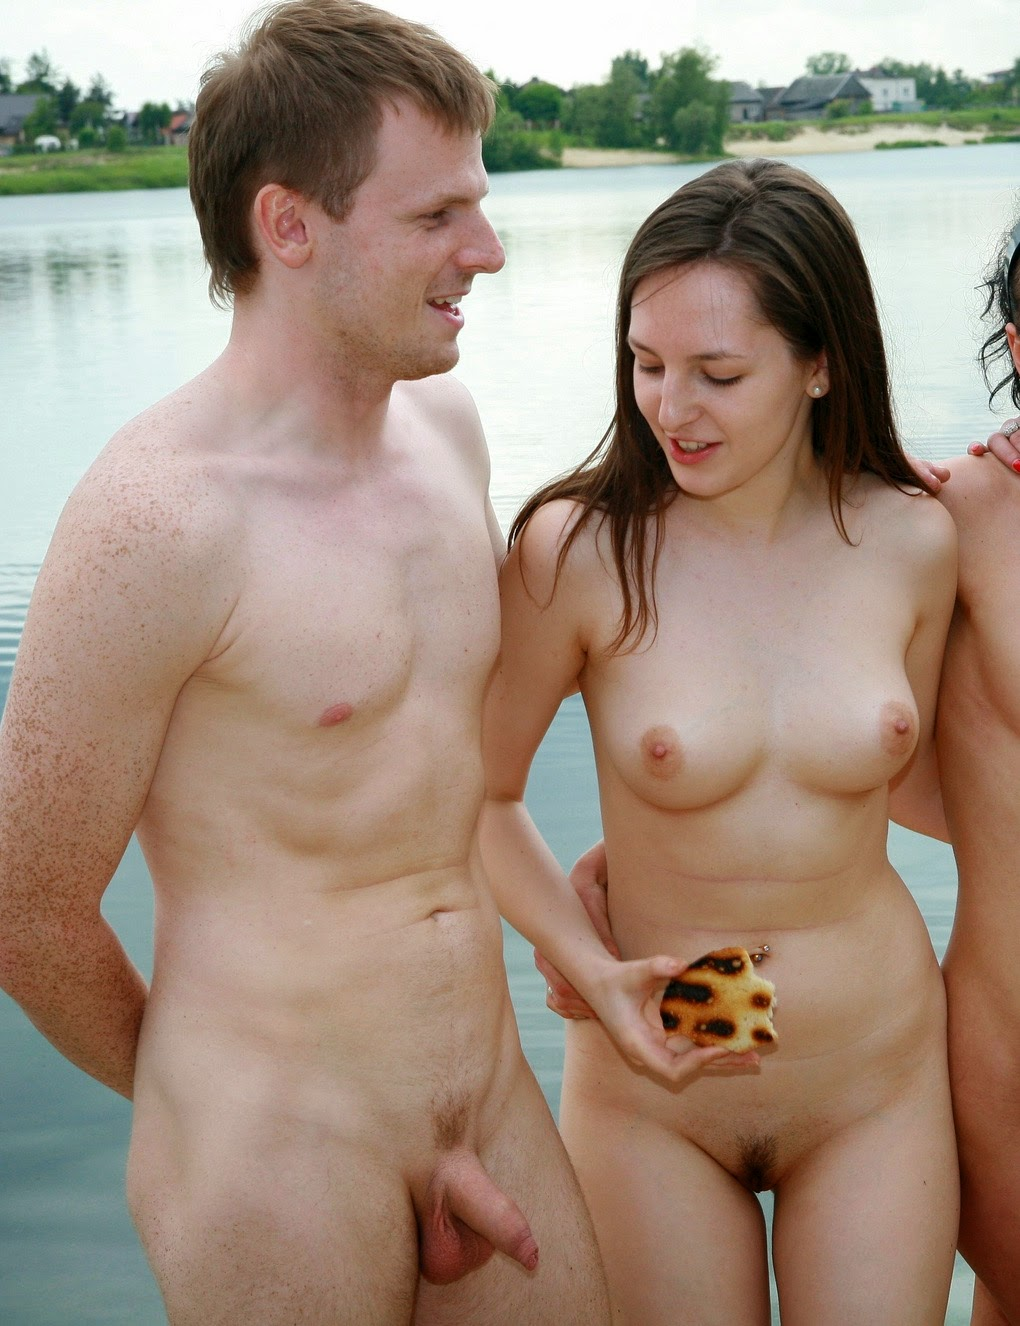 preteez young nudist